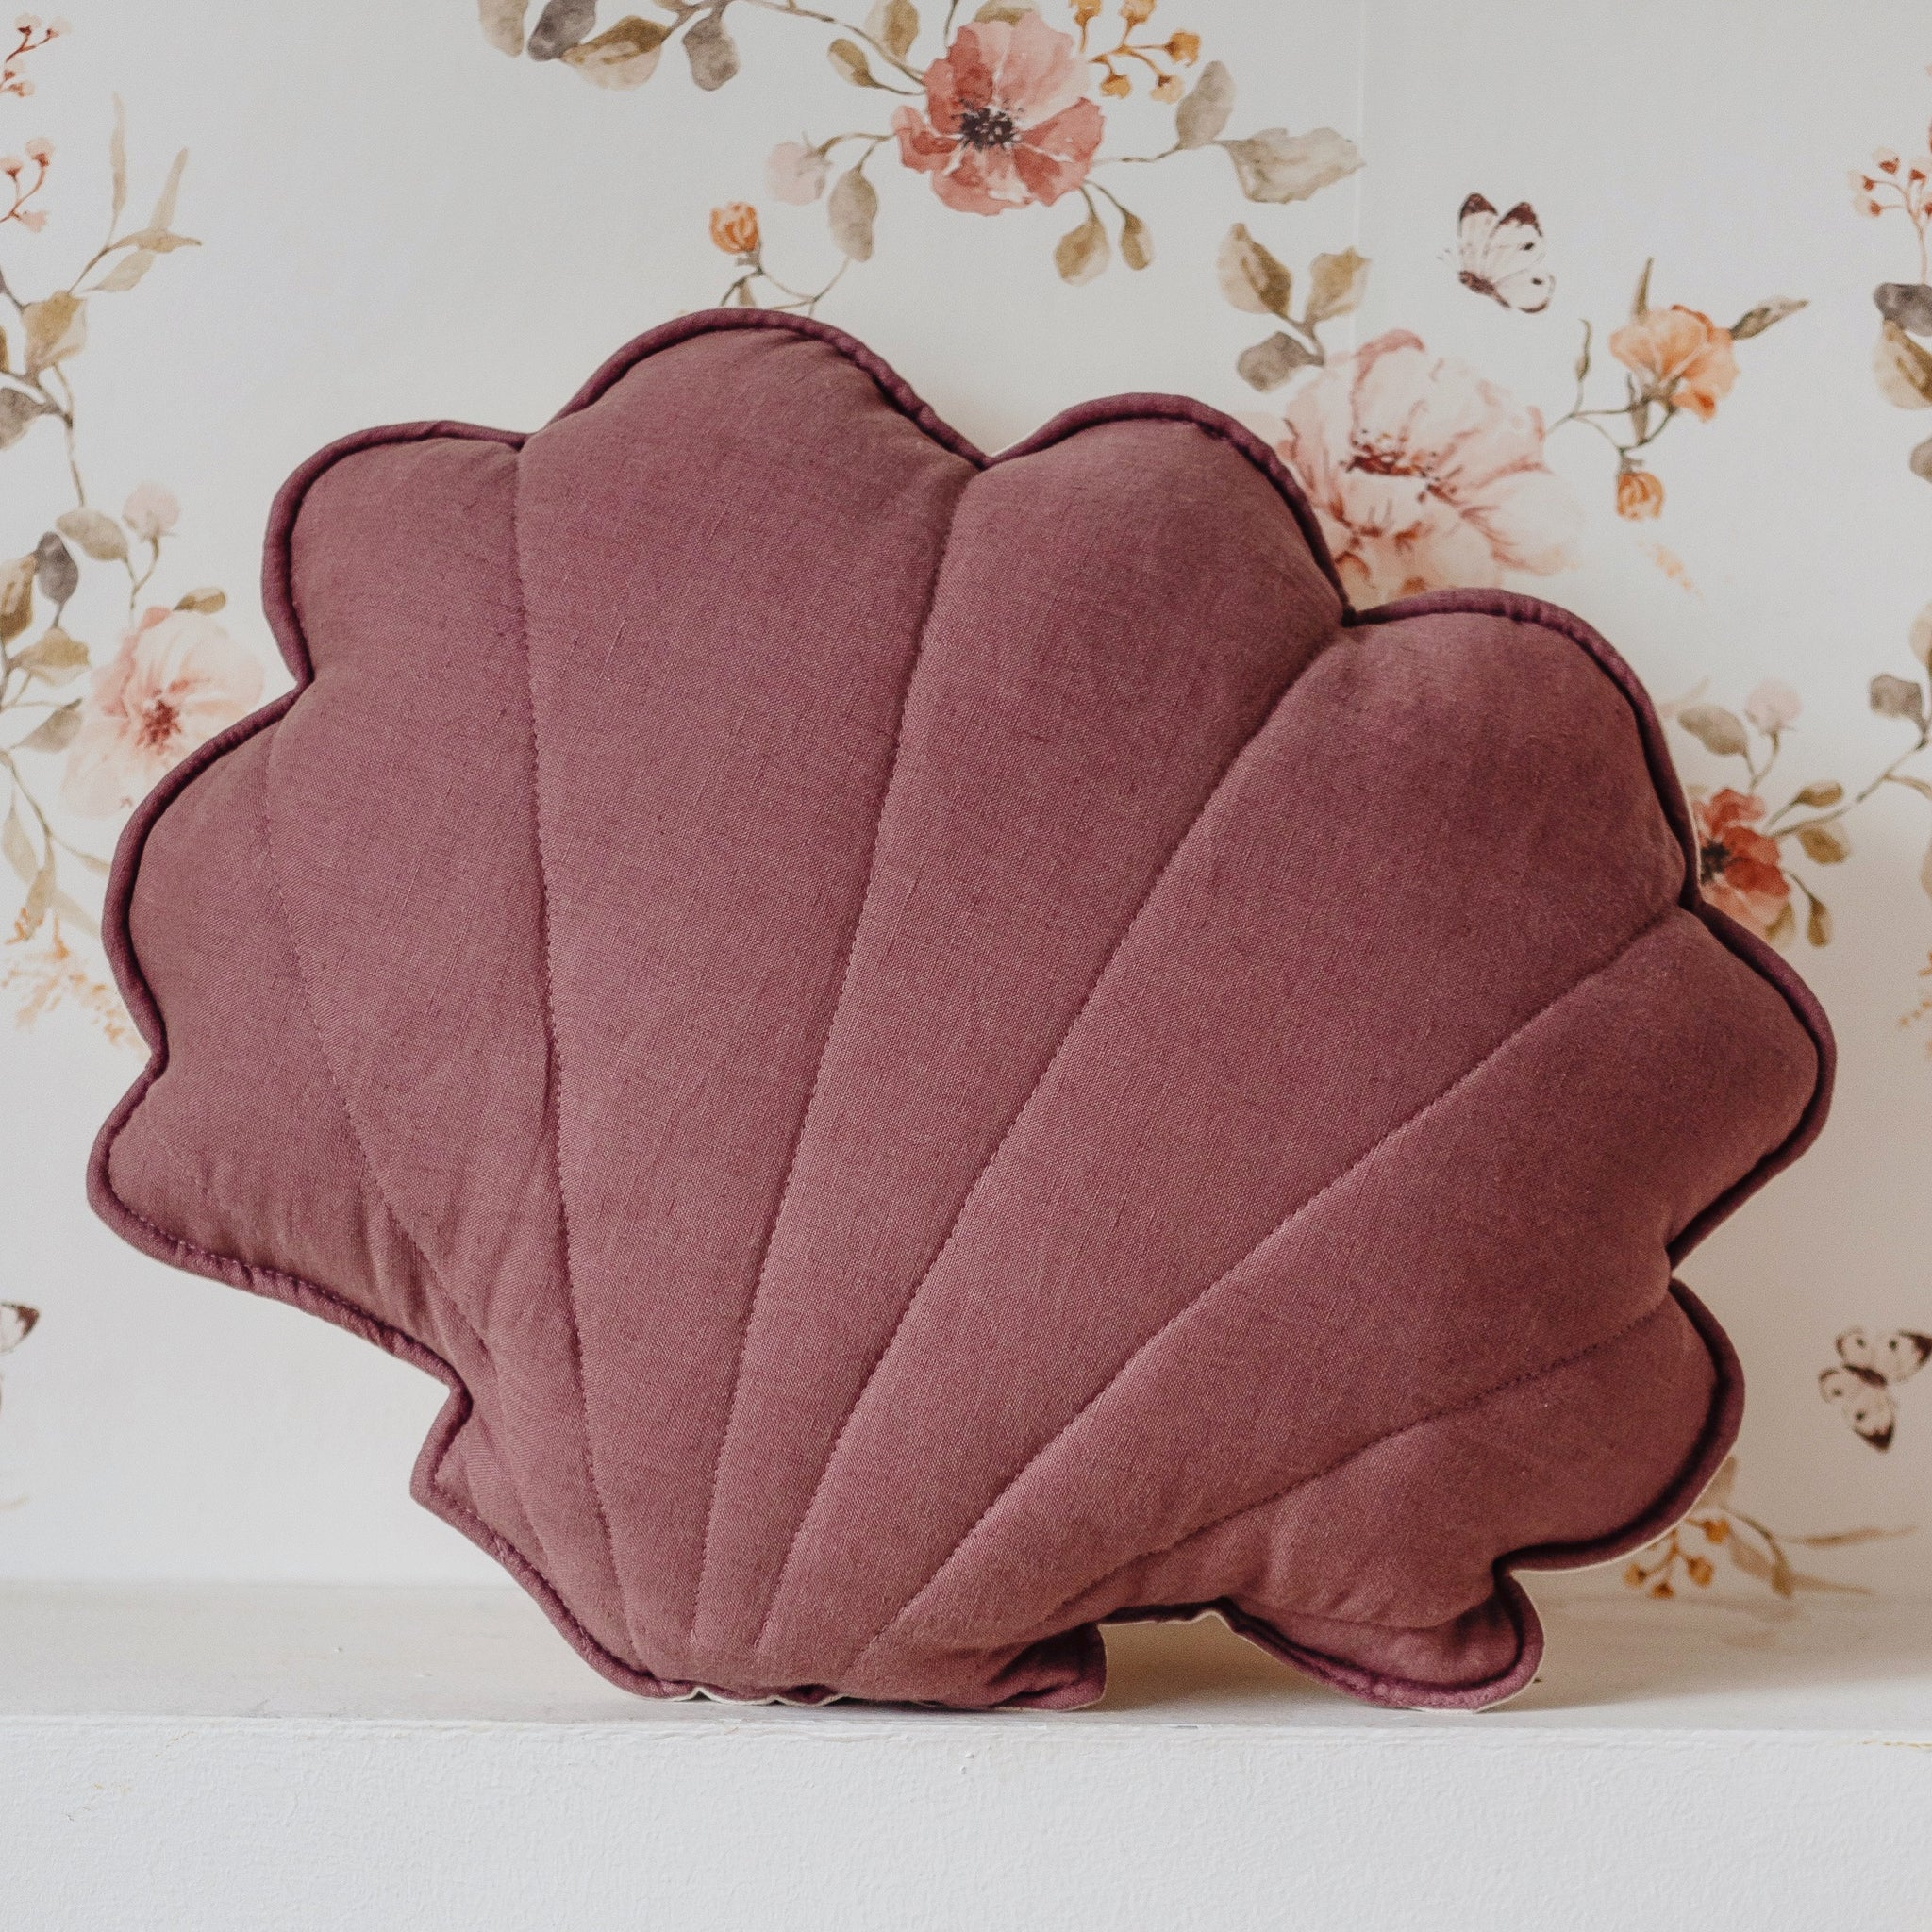 Marsala Linen Shell Cushion - The Quirky Home Co